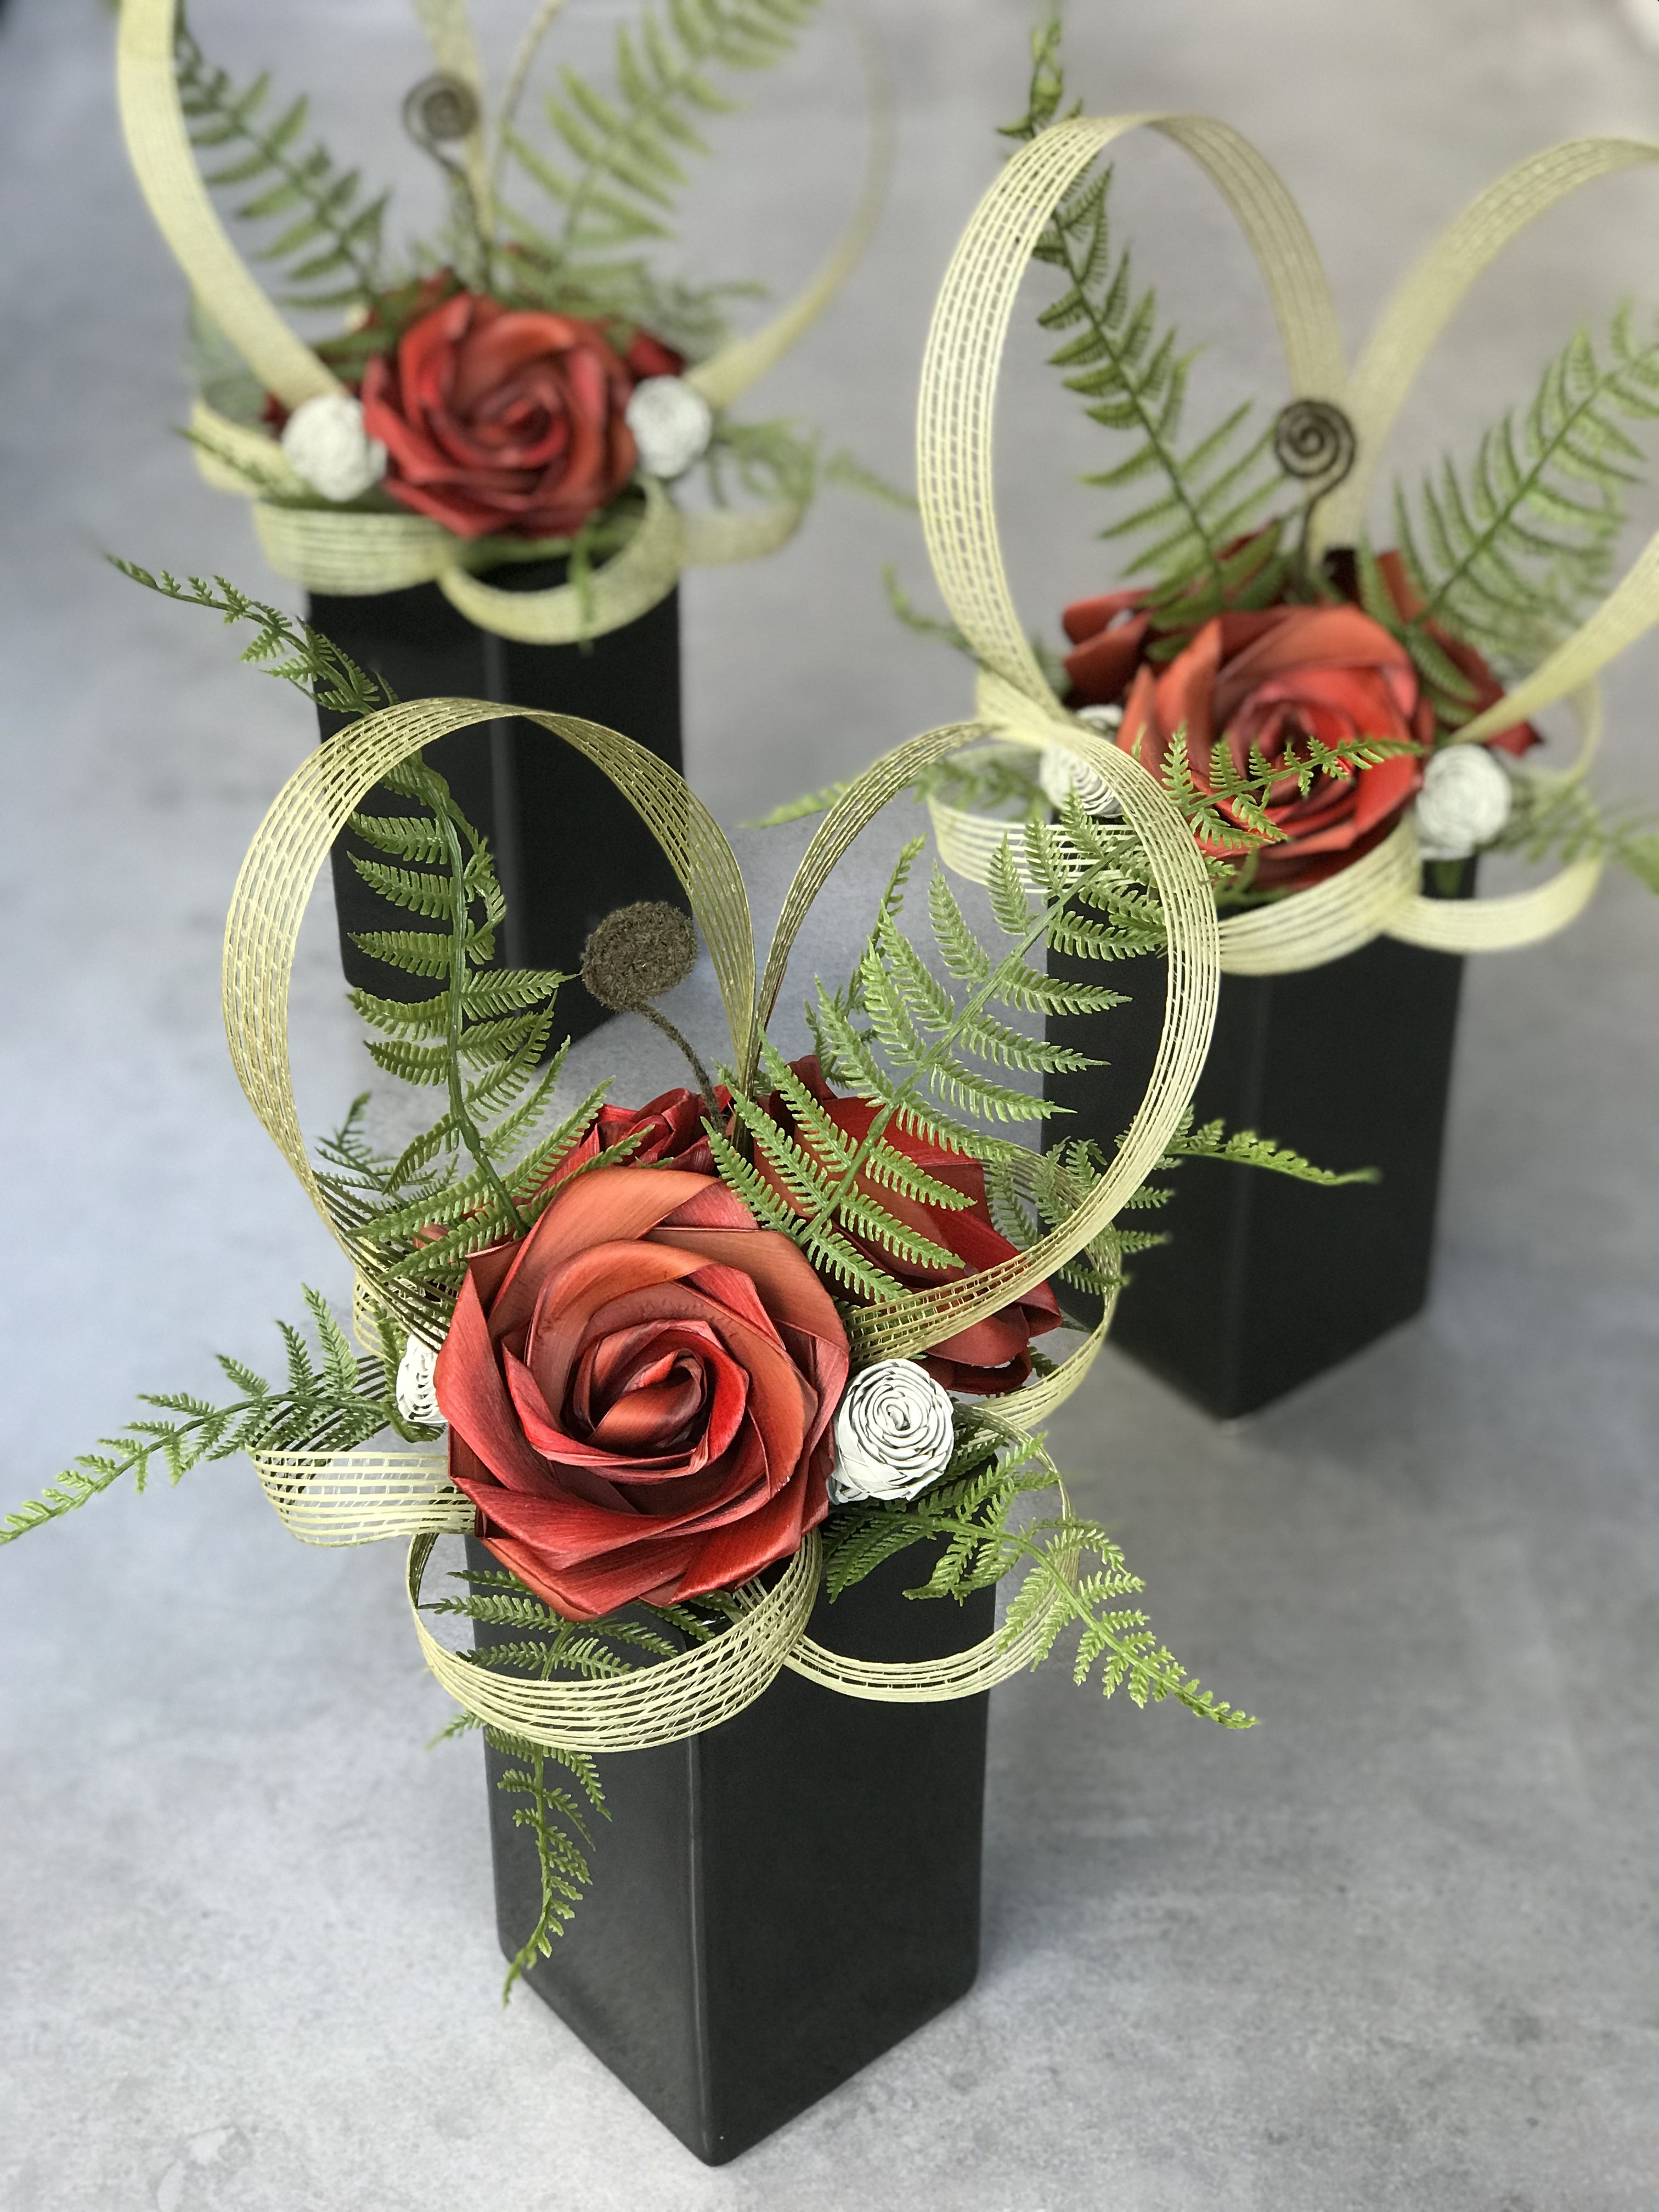 Corporate Arrangements For Events In 2020 Valentine Flower Arrangements Flax Flowers Flower Arrangements